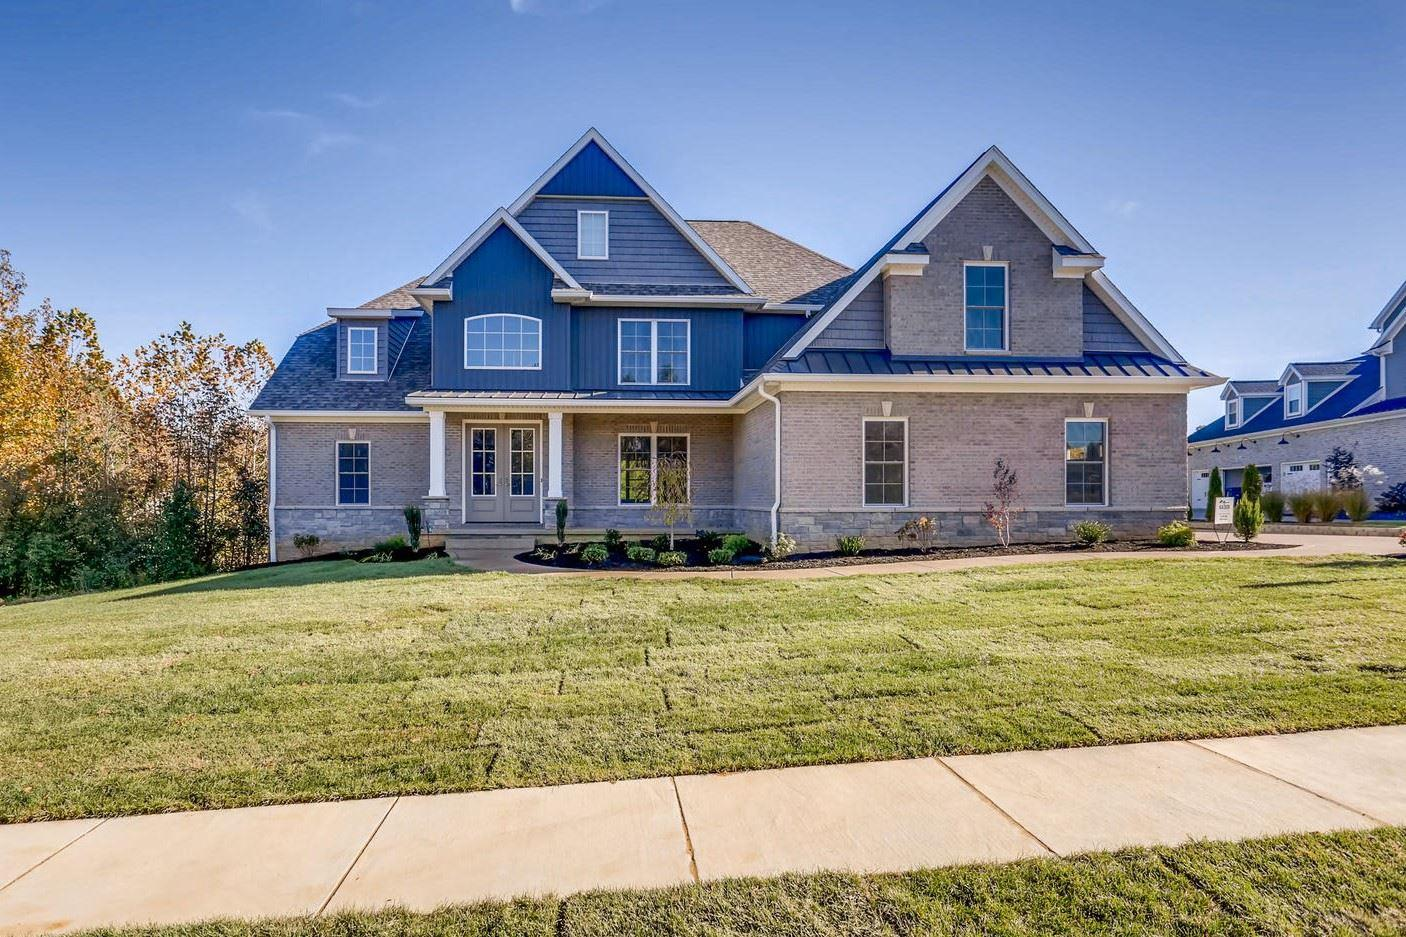 Remarkable 5-bedroom, 4-bath home, with bonus room, located in Woodfield Subdivision built by 2018 Parade of Homes Winner Corey Hirsch Construction. Meticulously crafted with 4270 square feet of living space, this sunlight-drenched open floor plan offers a welcoming, 2-story foyer which pulls you into the great room with picture windows and a gas fireplace, a beamed ceiling, and spectacular views. The gorgeous eat-in kitchen boasts an over-sized island with seating, glass back splash, dining nook, walk-in pantry, gas cooktop, and stainless appliances. The main-level master suite offers lovely views and a spa-like master bath with a tiled shower, dual vanities, a spacious walk-in closet, and decorative lighting. The main level also offers a second full bath, a guest bedroom, laundry room with built-ins off the garage, and much more. Upstairs you will find three additional bedrooms, two full baths, and a wonderful bonus room. The spectacular outdoor living space offers you a large patio, beautiful views of the property, and lush landscaping.